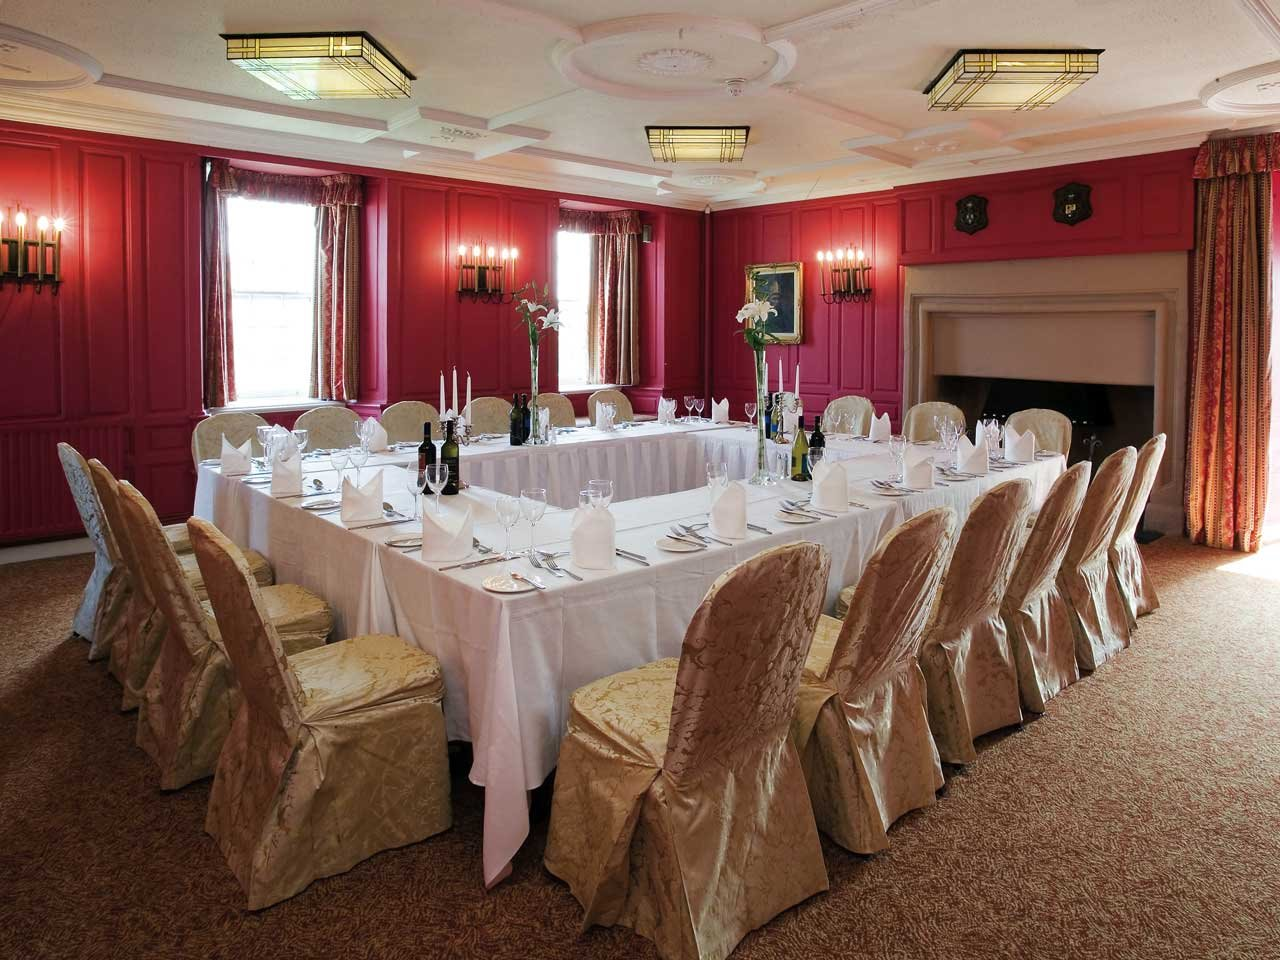 Meeting Rooms At Ballygally Castle Ballygally Castle Hotel Coast